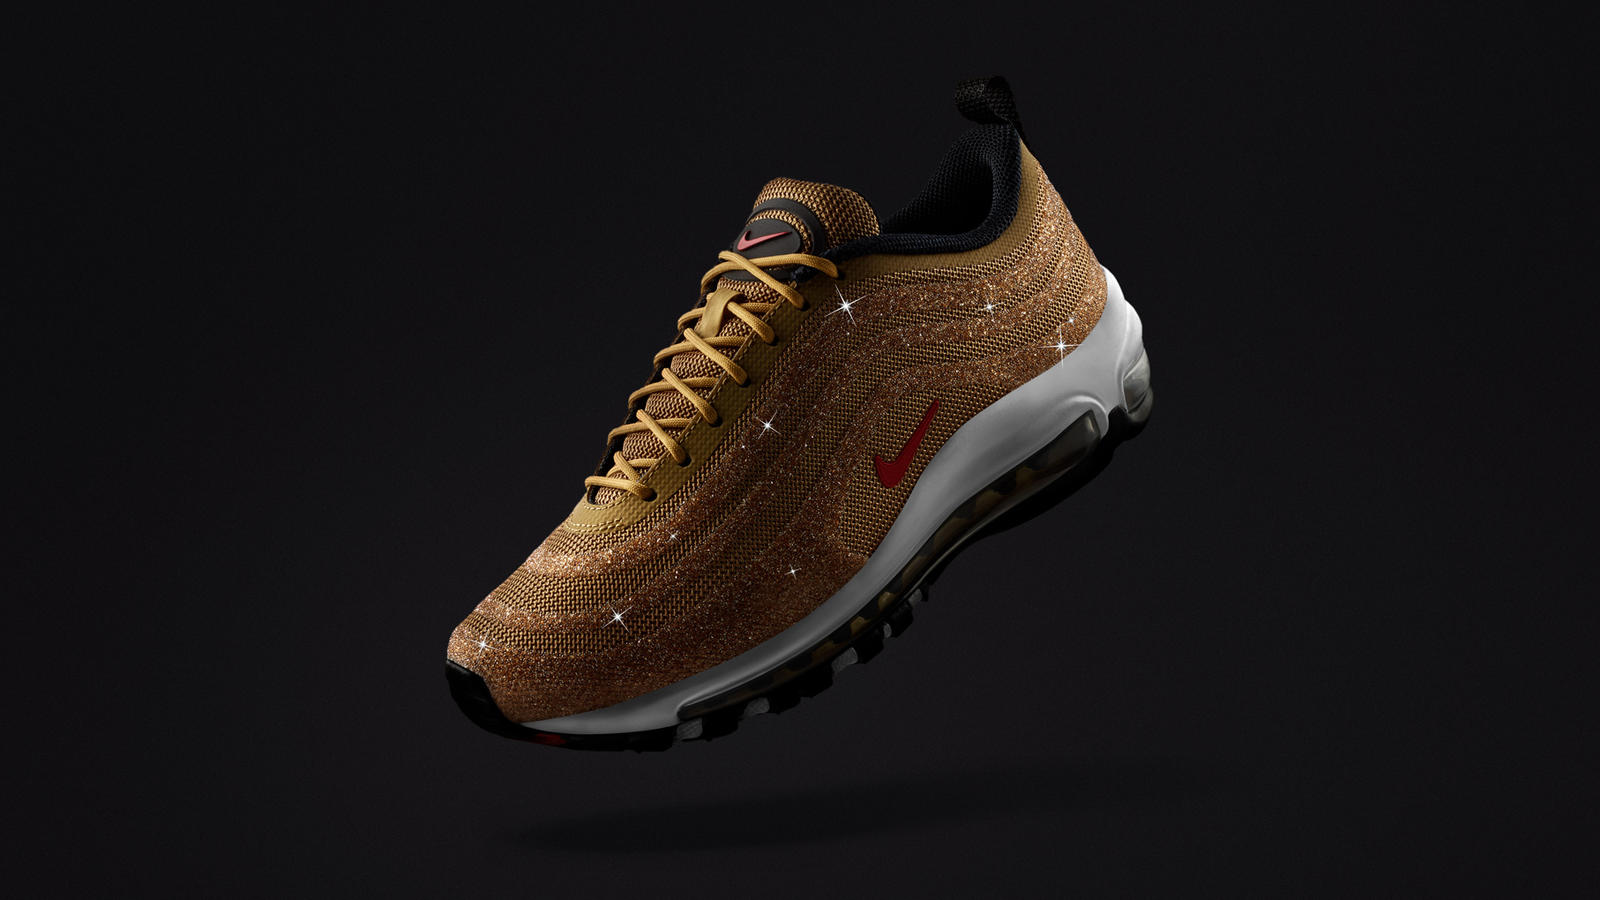 d025d90c8345 Nike Air Max 97 Gold Swarovski® Crystal - Nike News